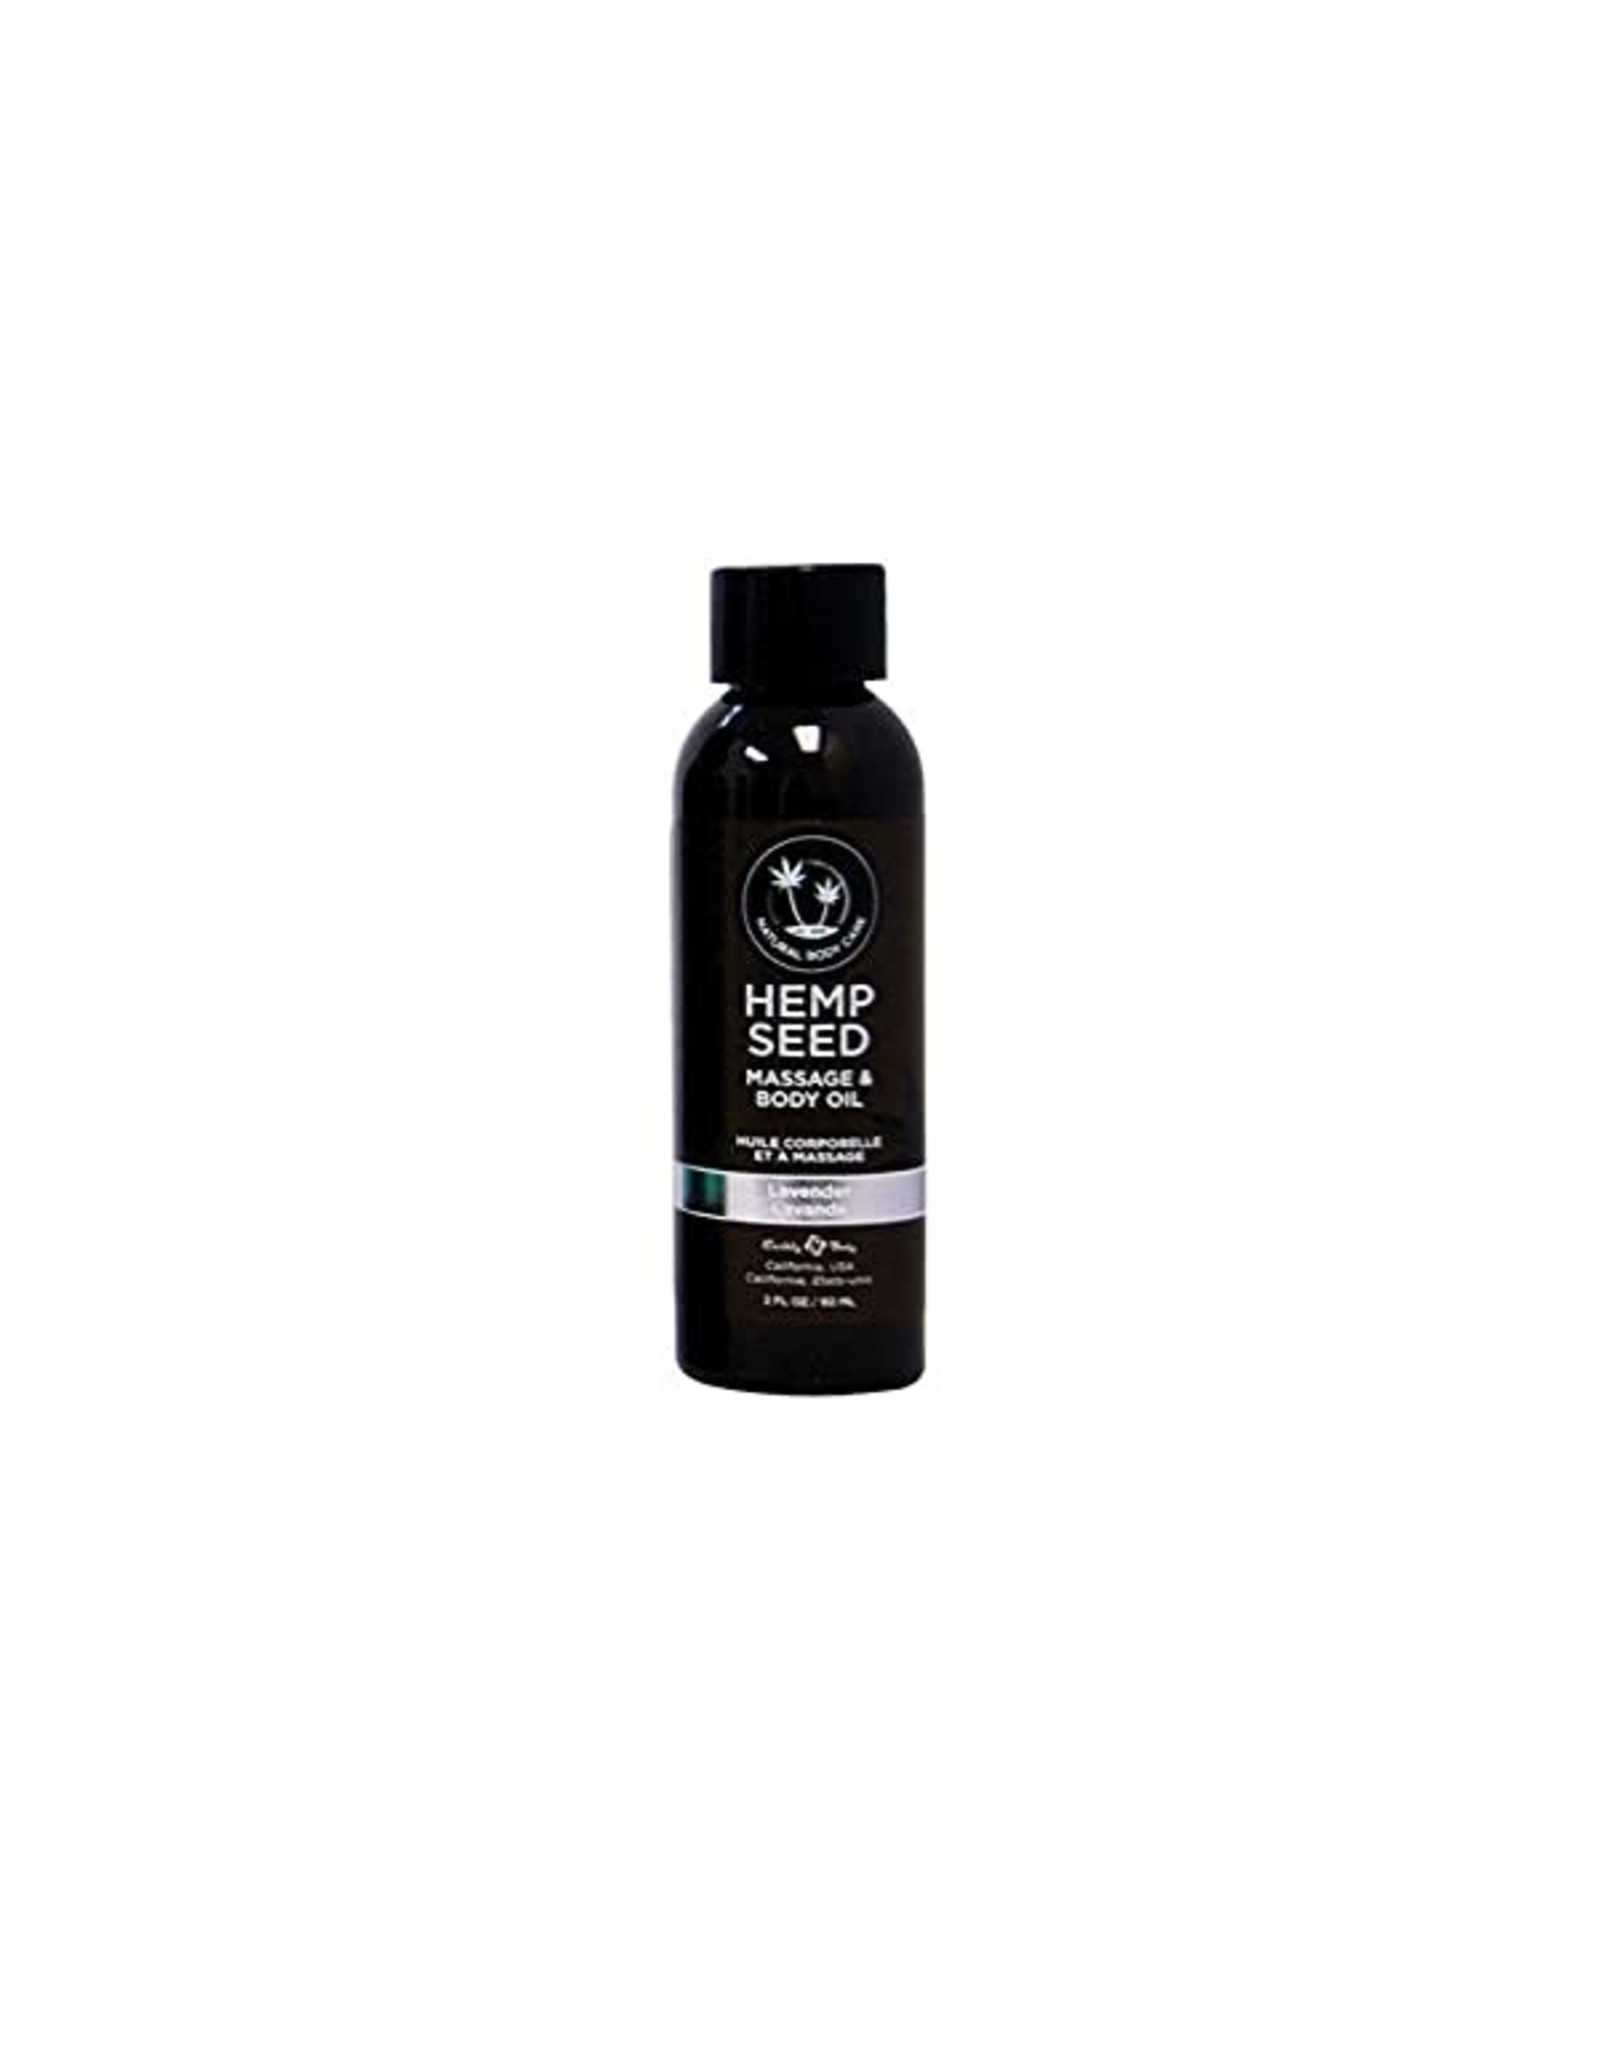 EARTHLY BODY EARTHLY BODIES - HEMP SEED MASSAGE OIL 2OZ. - LAVENDER